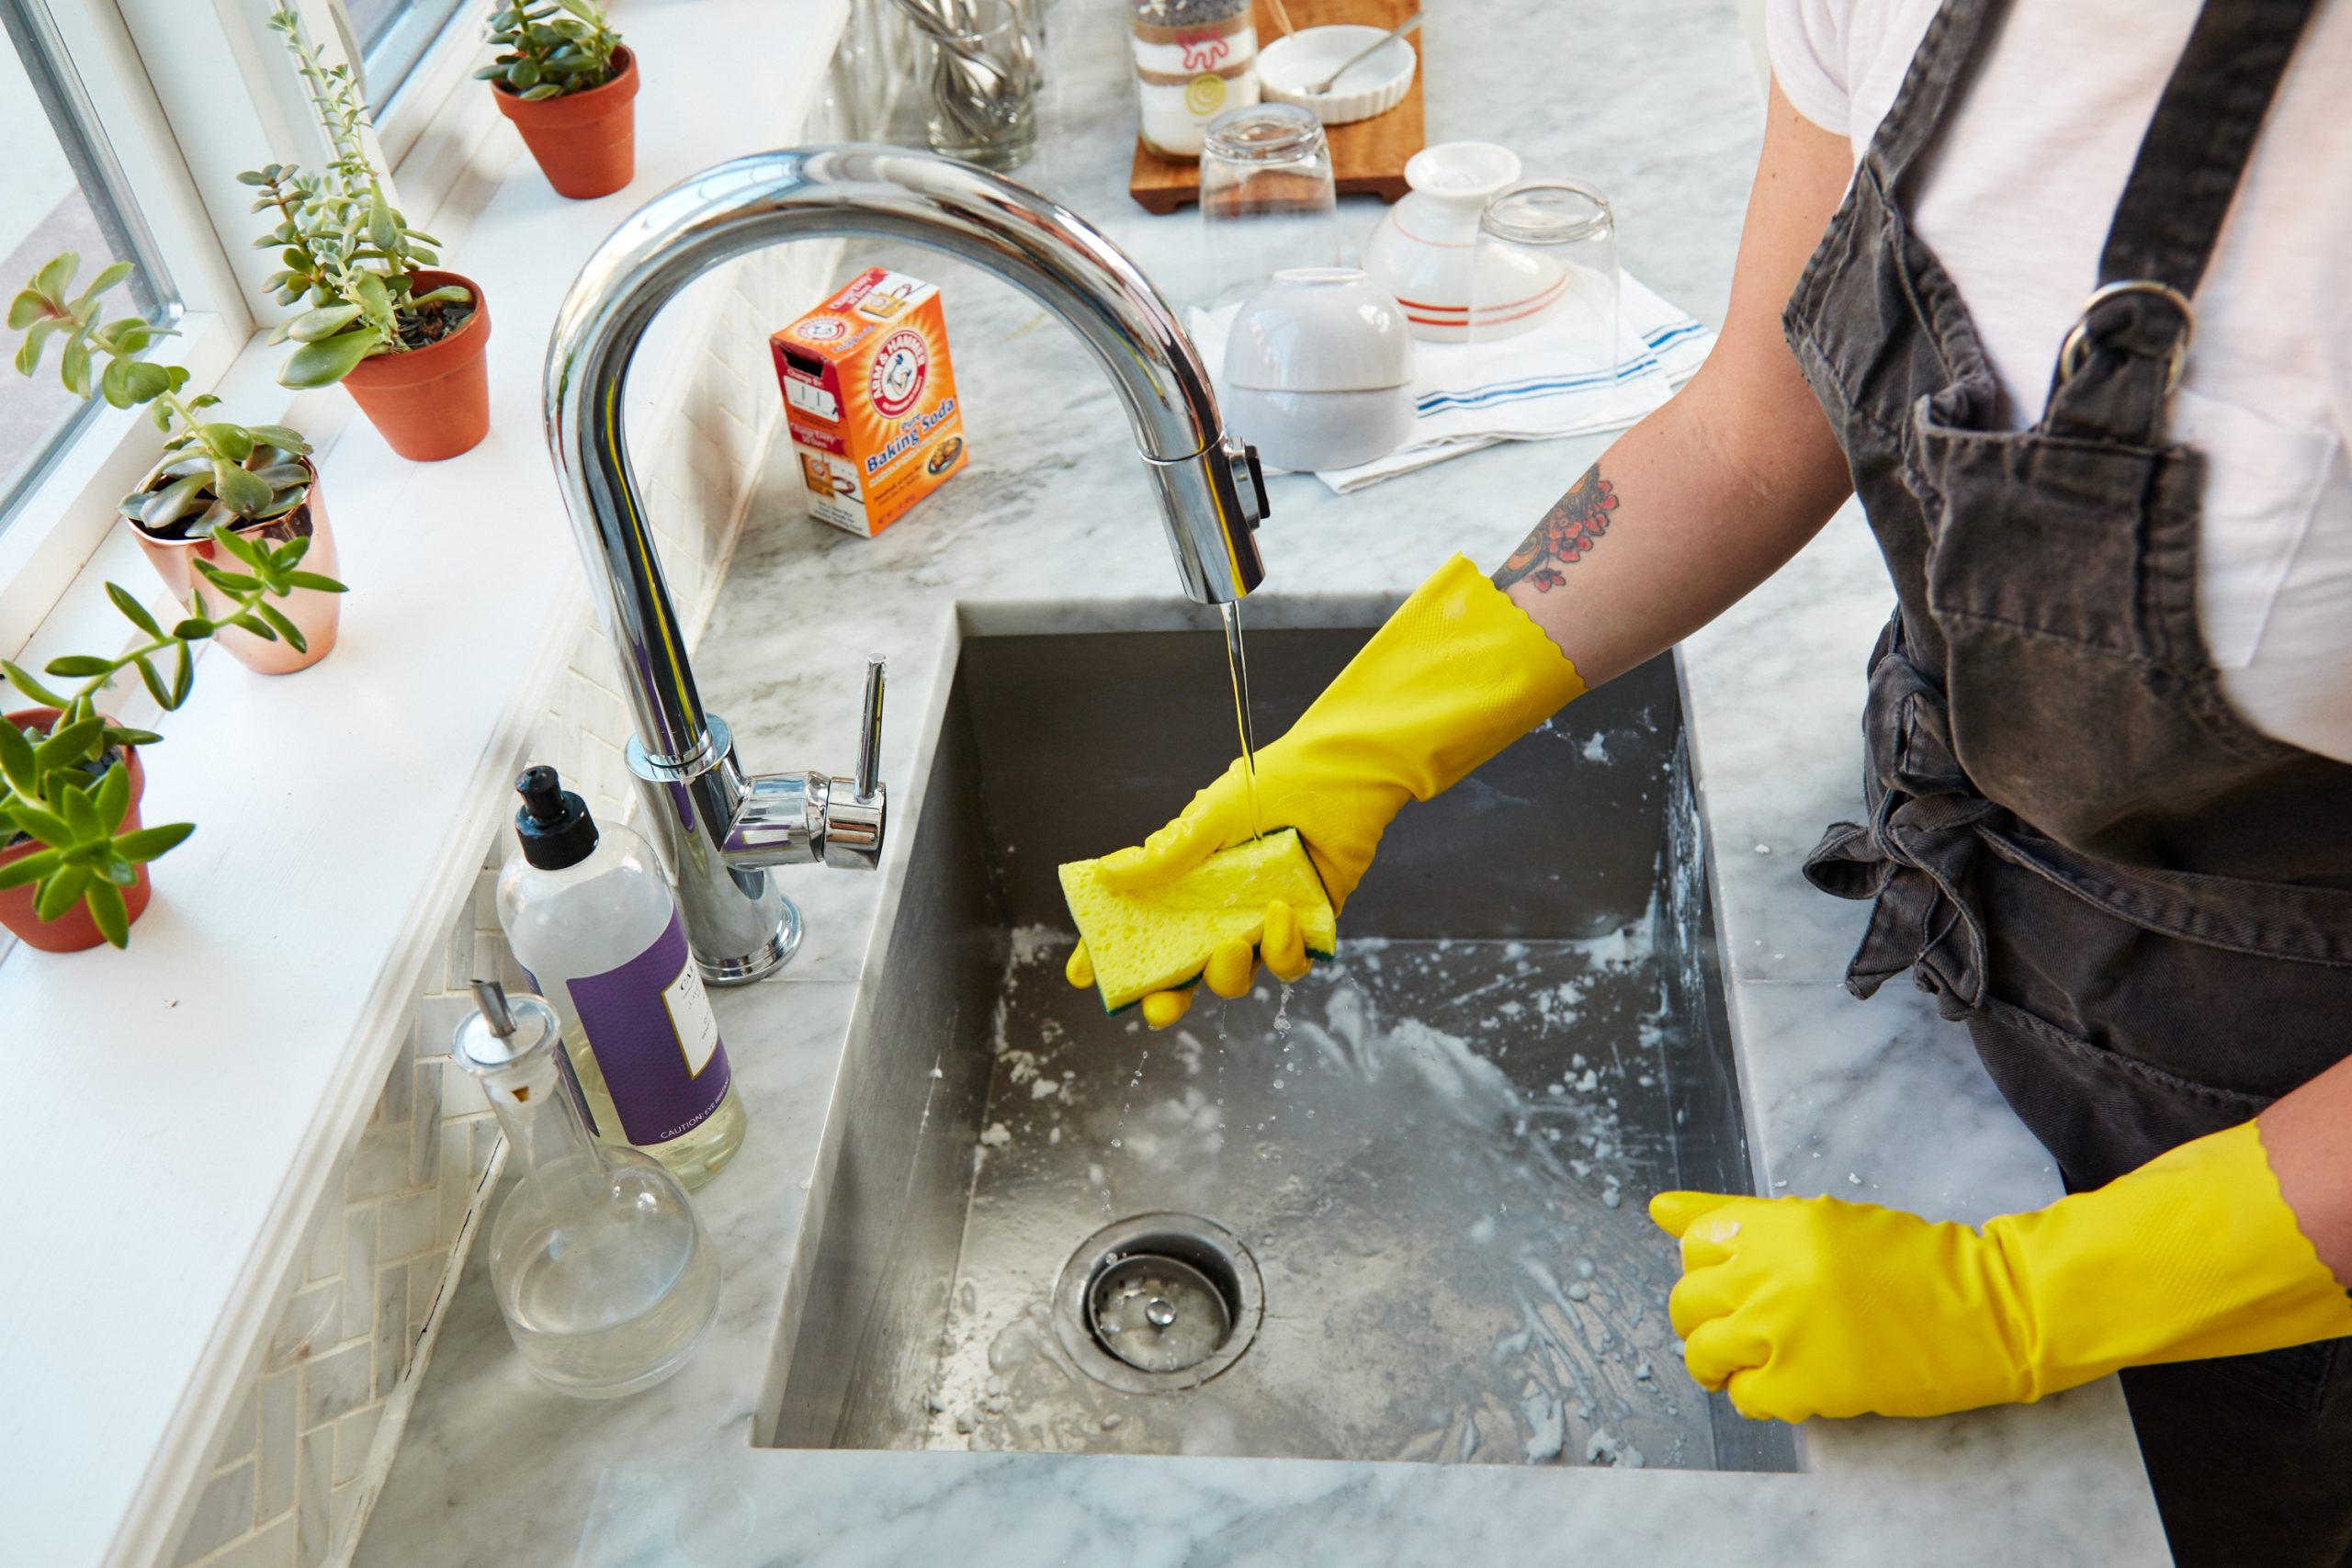 gloves fir your dishes